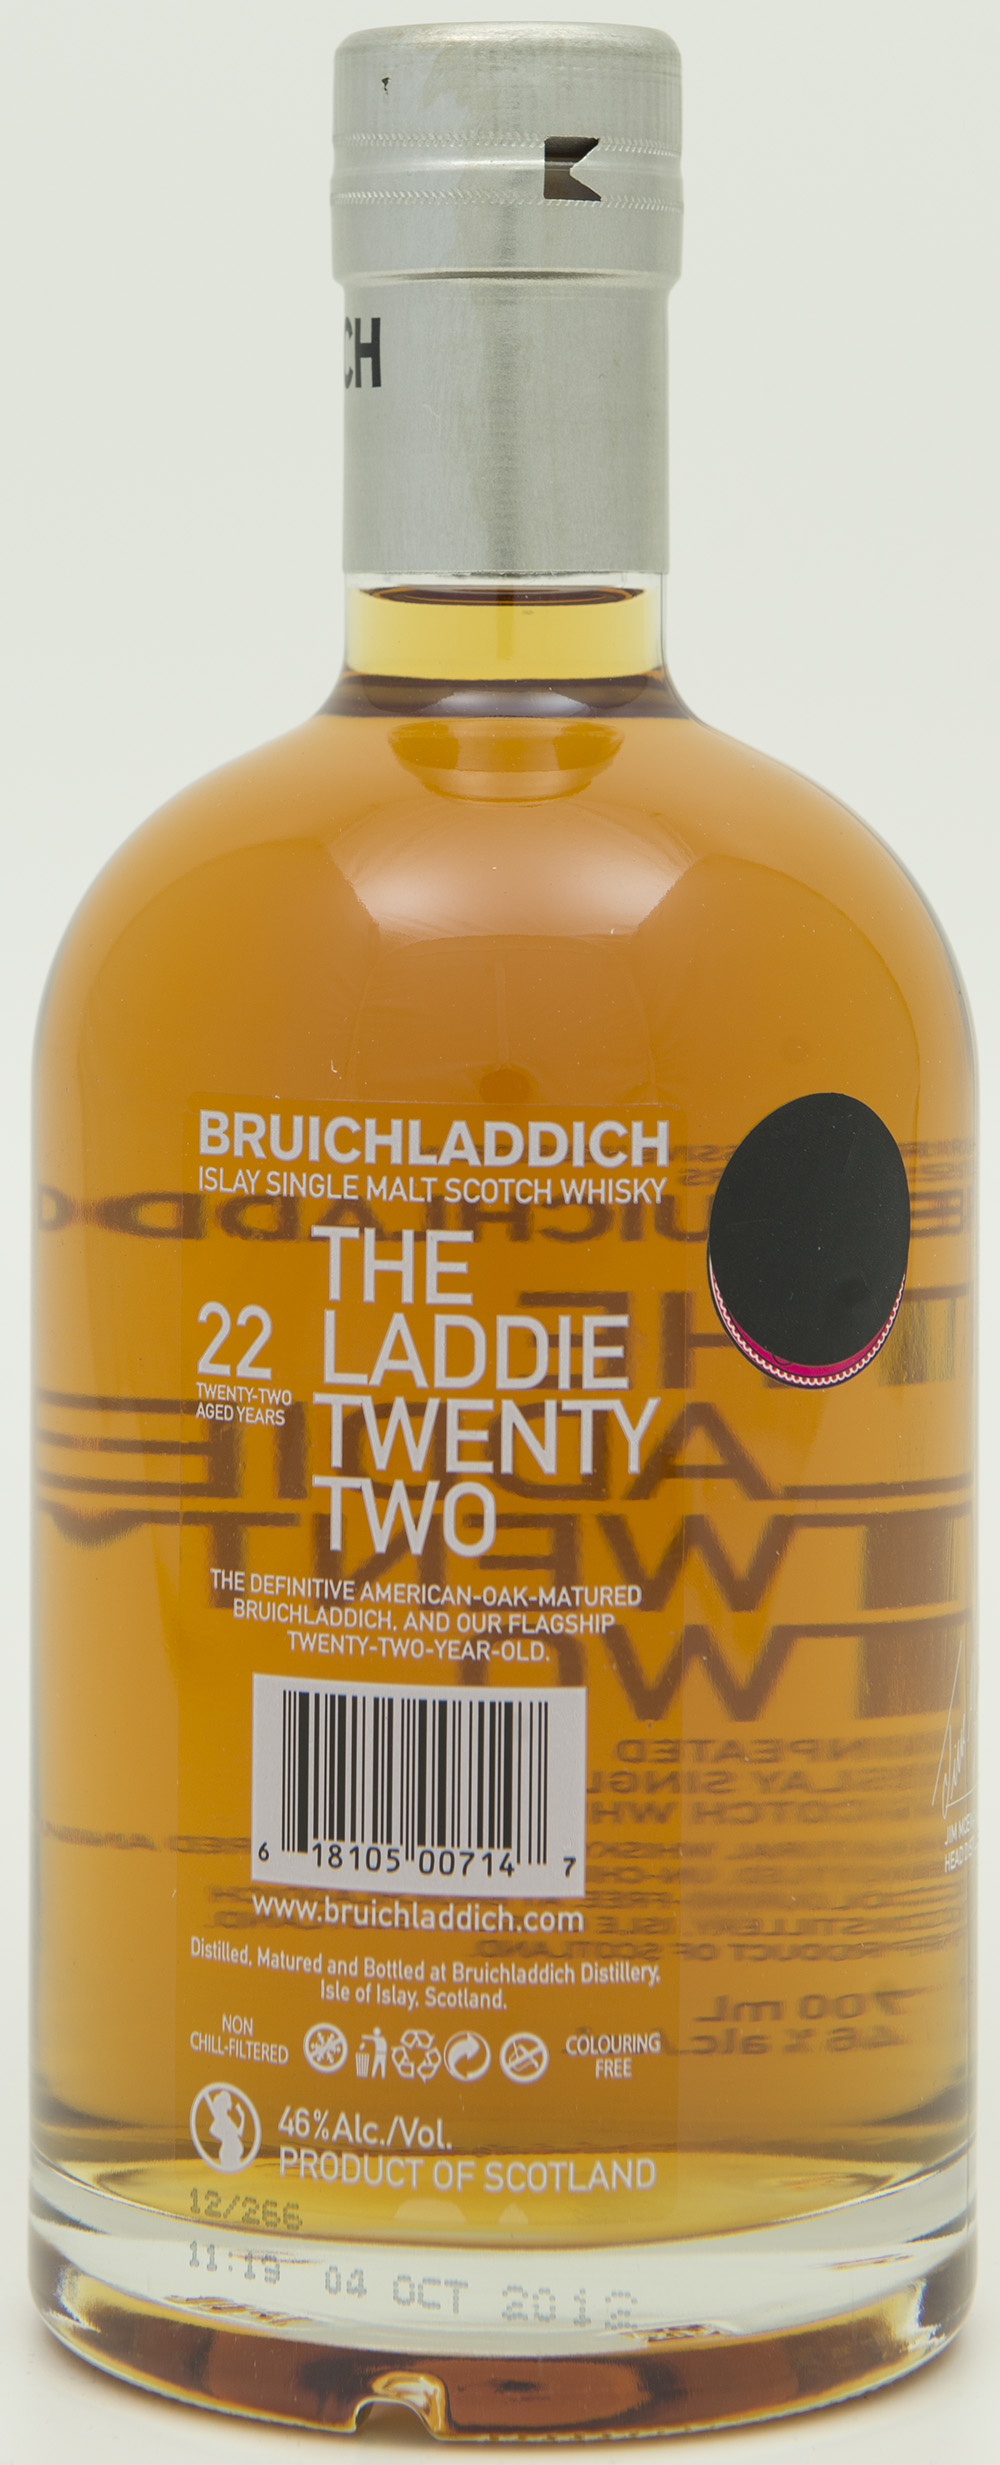 Billede: DSC_0773 - Bruichladdich The Laddie Twenty Two - bottle back.jpg